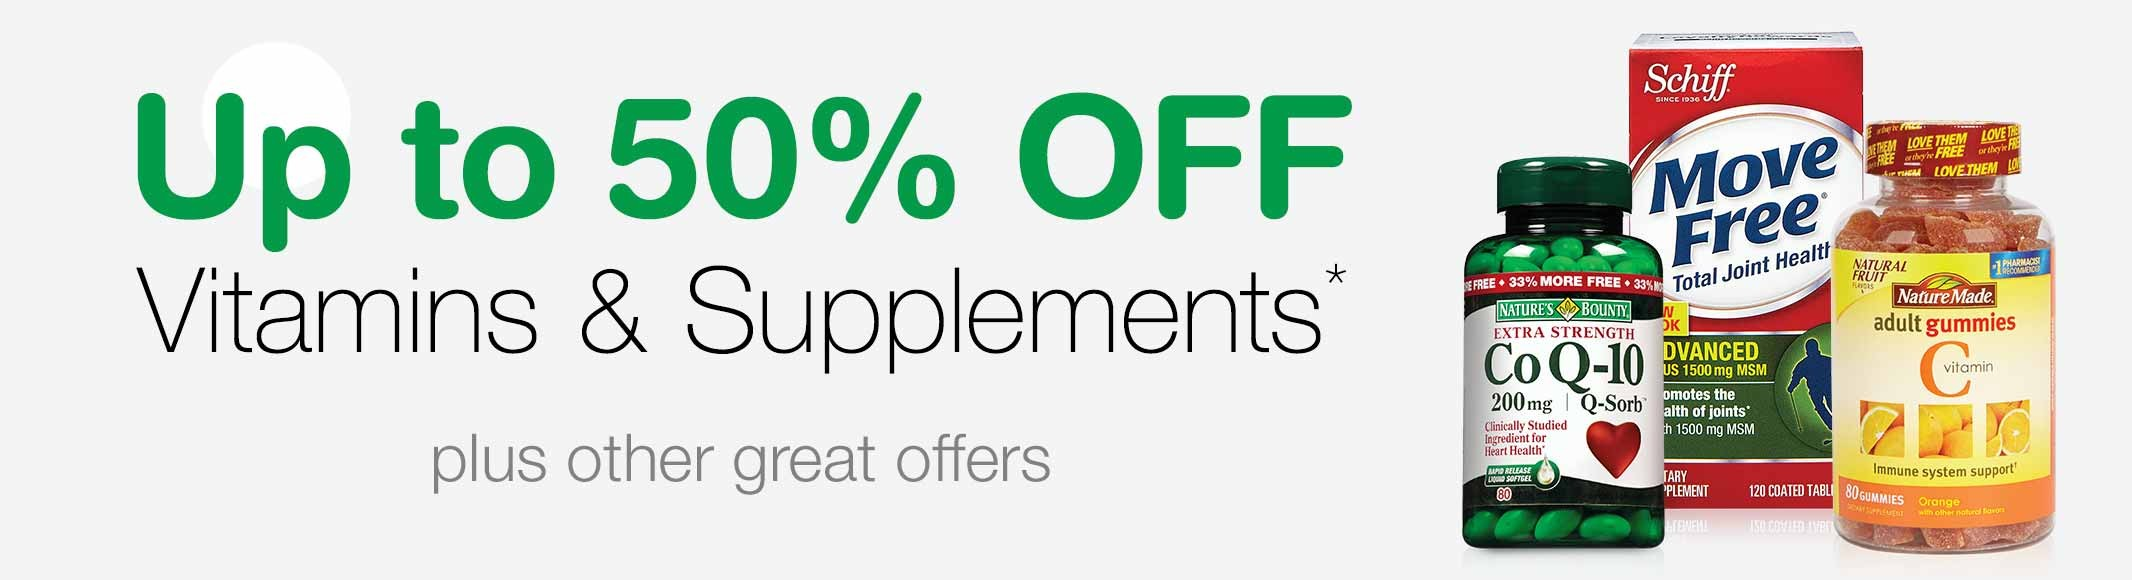 Bargain - Up to 50% OFF - Vitamins and Supplements - Weekly Deals | Walgreens